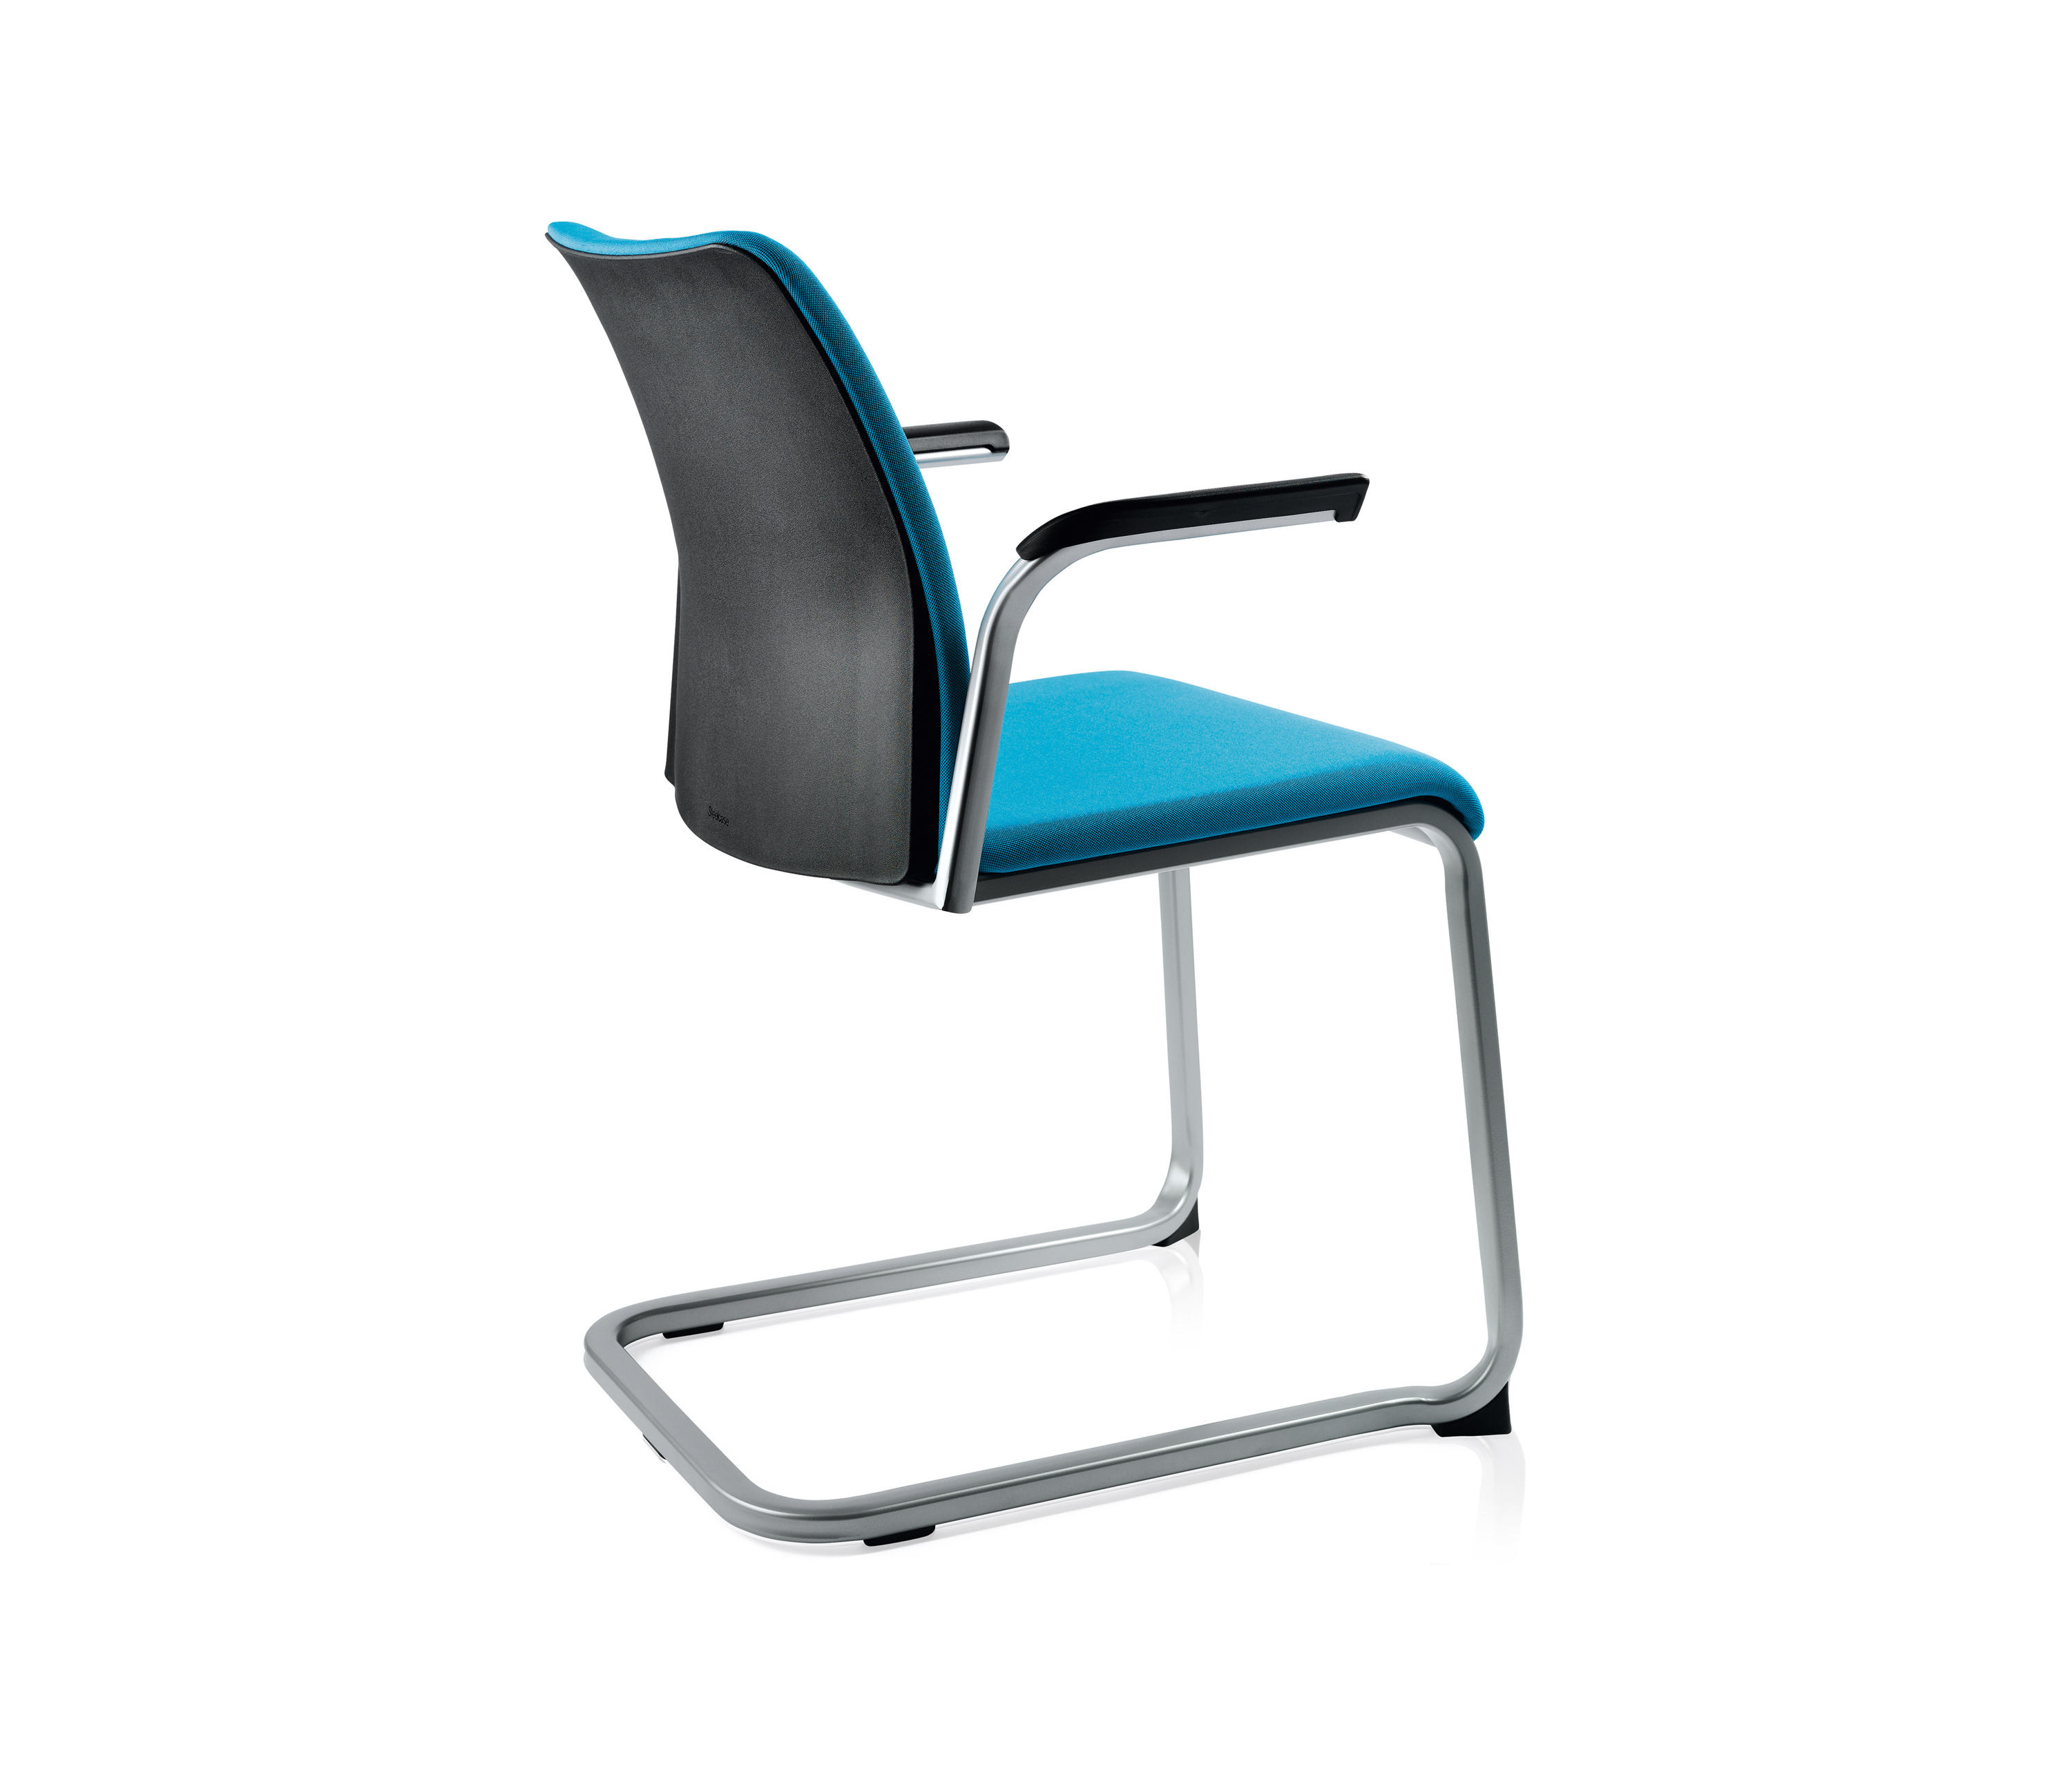 EASTSIDE Conference chairs from Steelcase